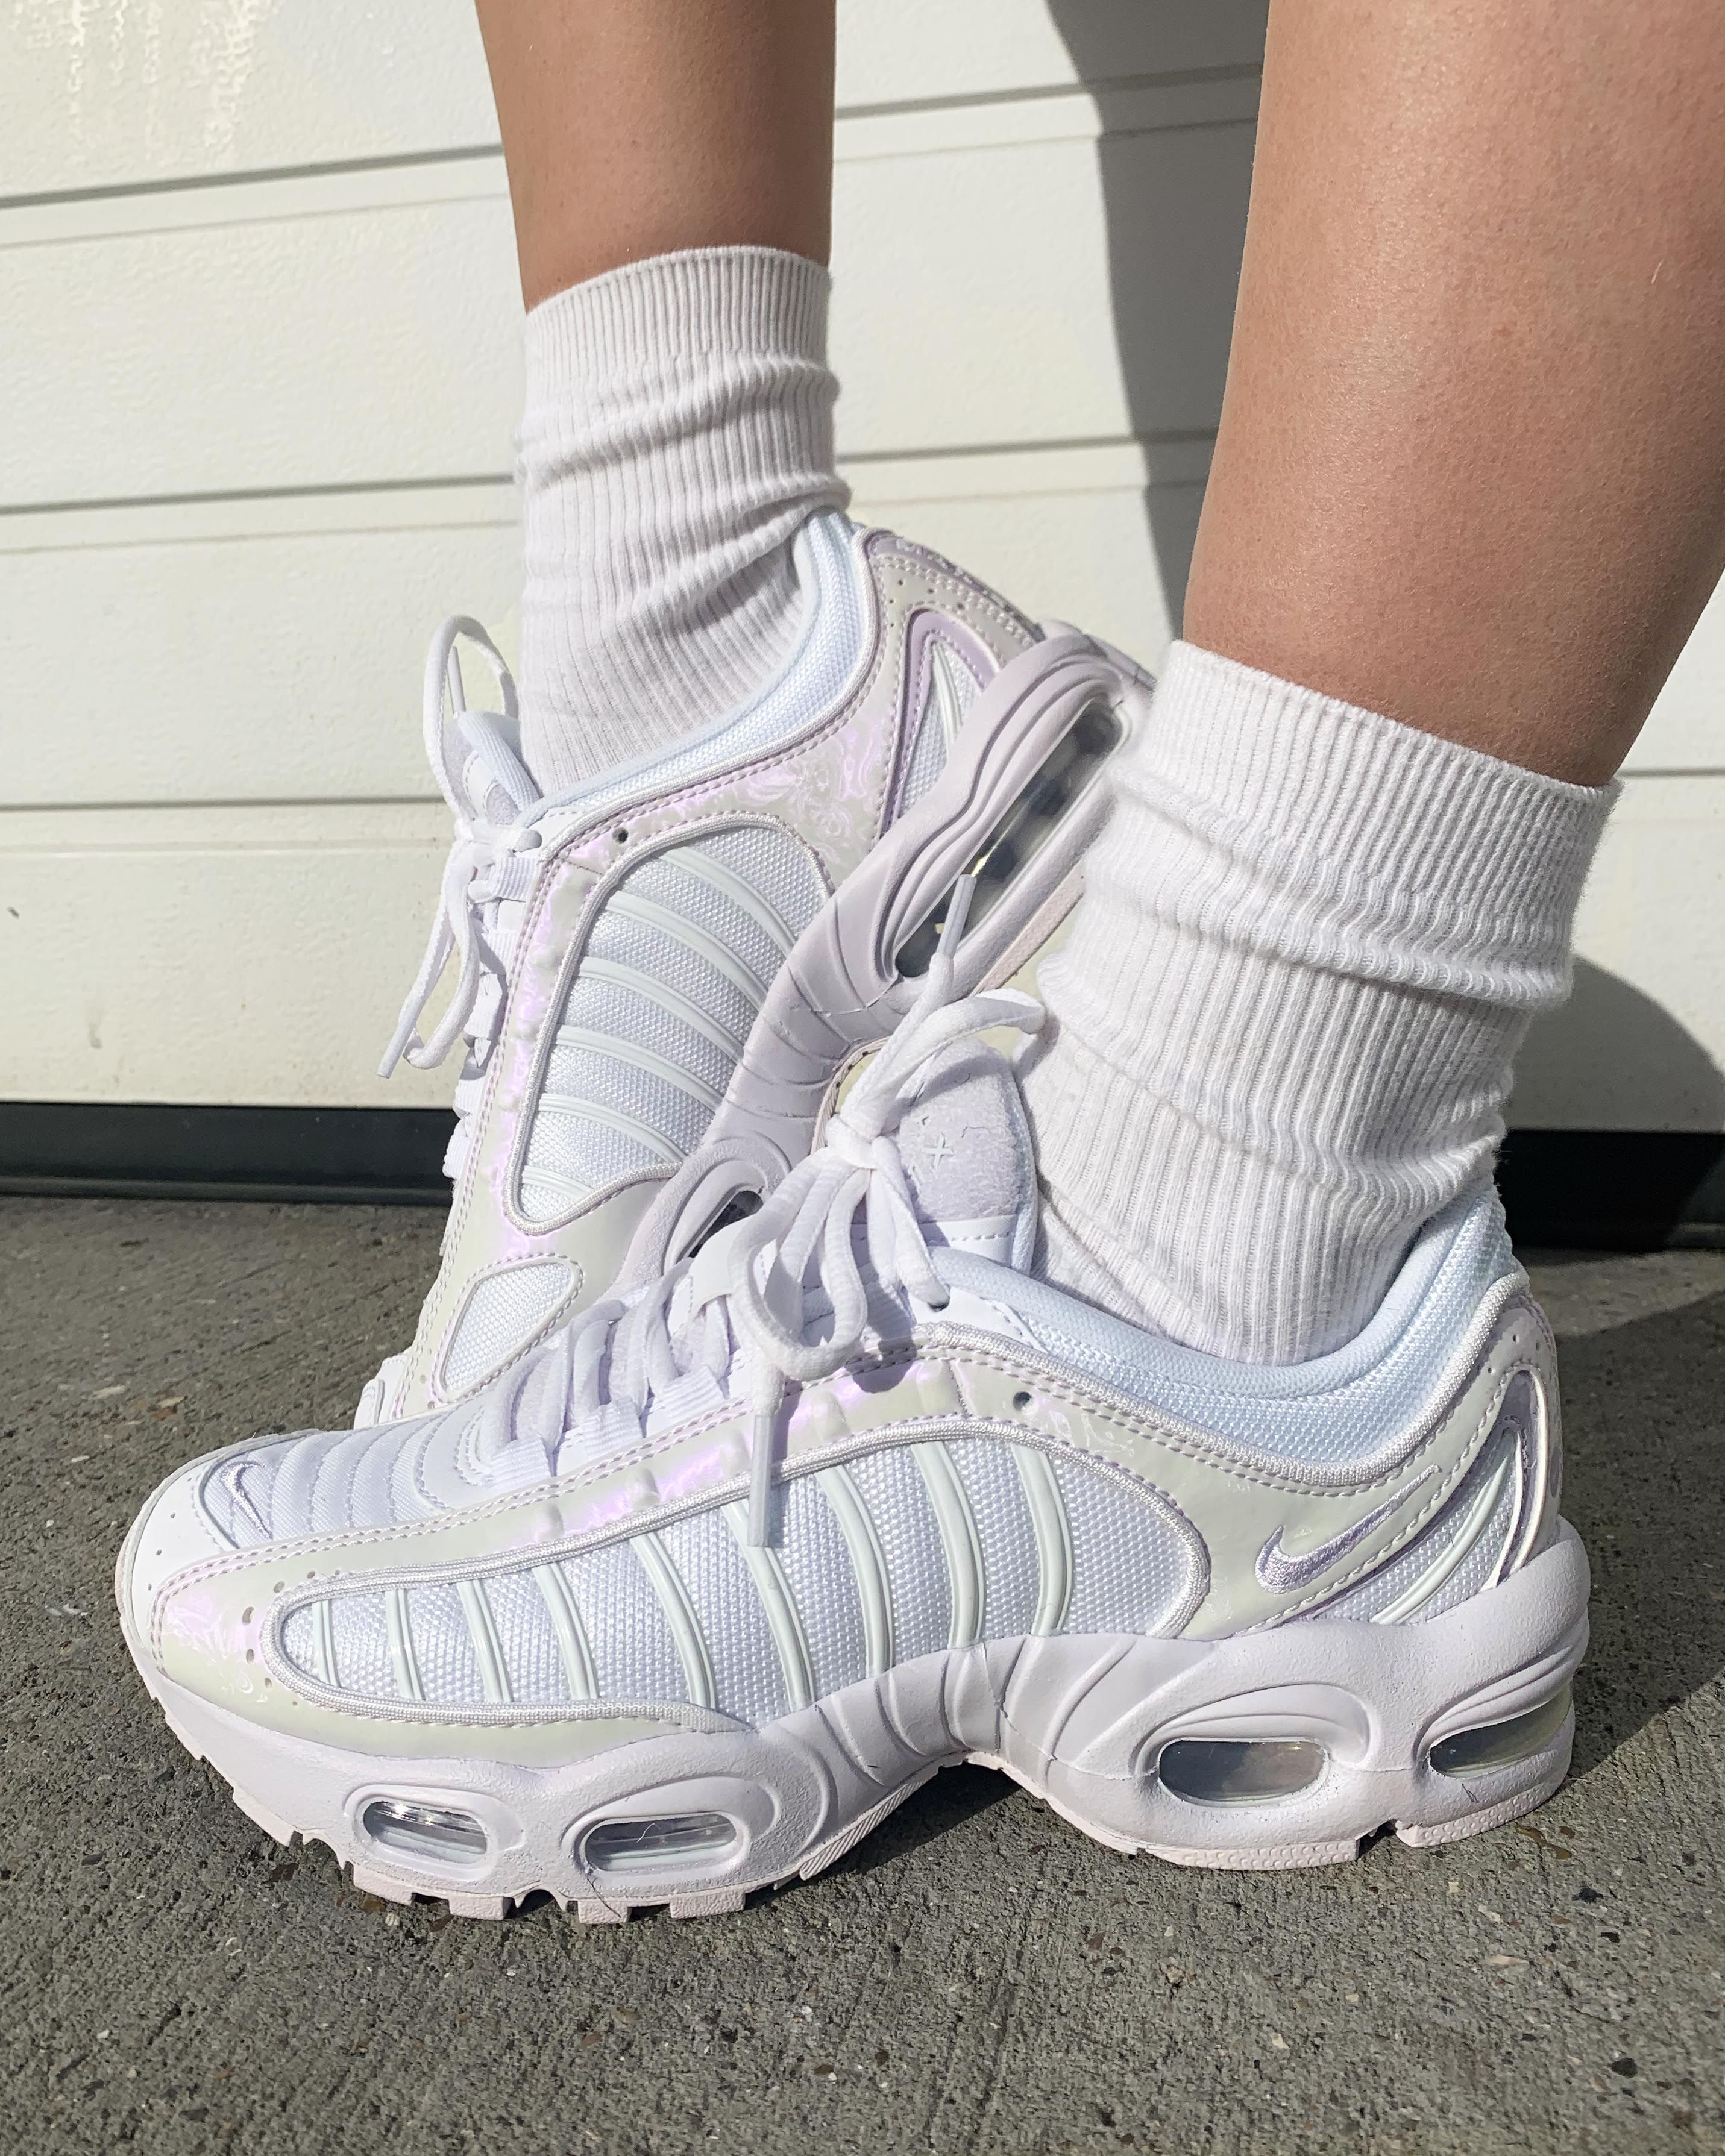 Nike Air Max Tailwind 4 White Barely Grape Where To Buy Cu3453 100 The Sole Womens Sneakers Nike Air Max Nike Air Max Most Comfortable Sneakers